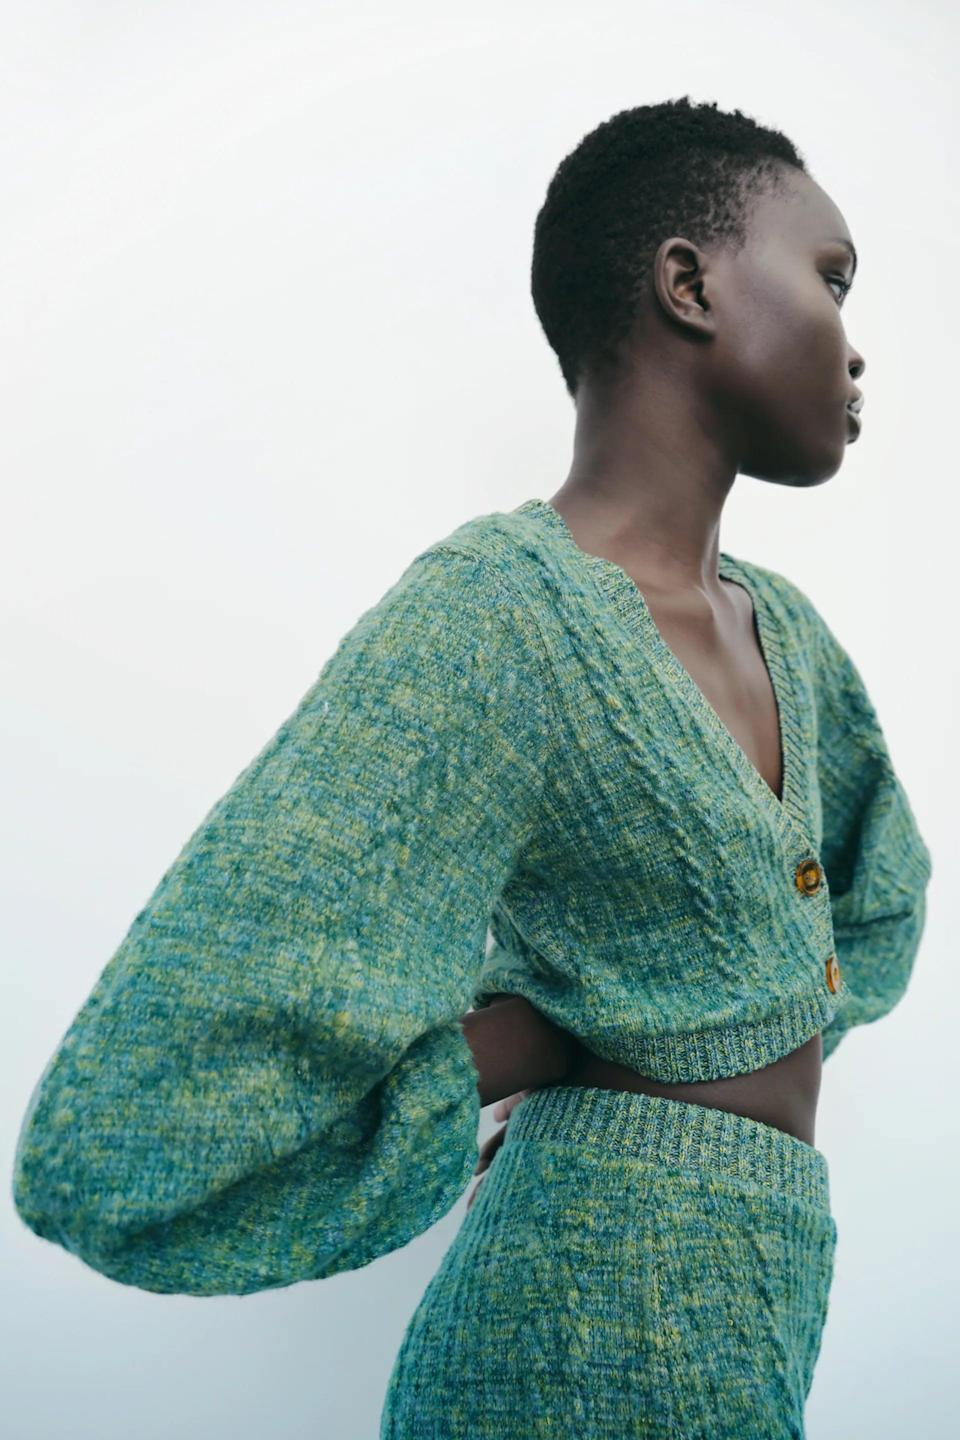 <p>Get yourself this <span>Zara Green Marl Sweater</span> ($40) and <span>Soft Crop Top</span> ($26) for fall, and thank us later. It's a cute option for day or night.</p>